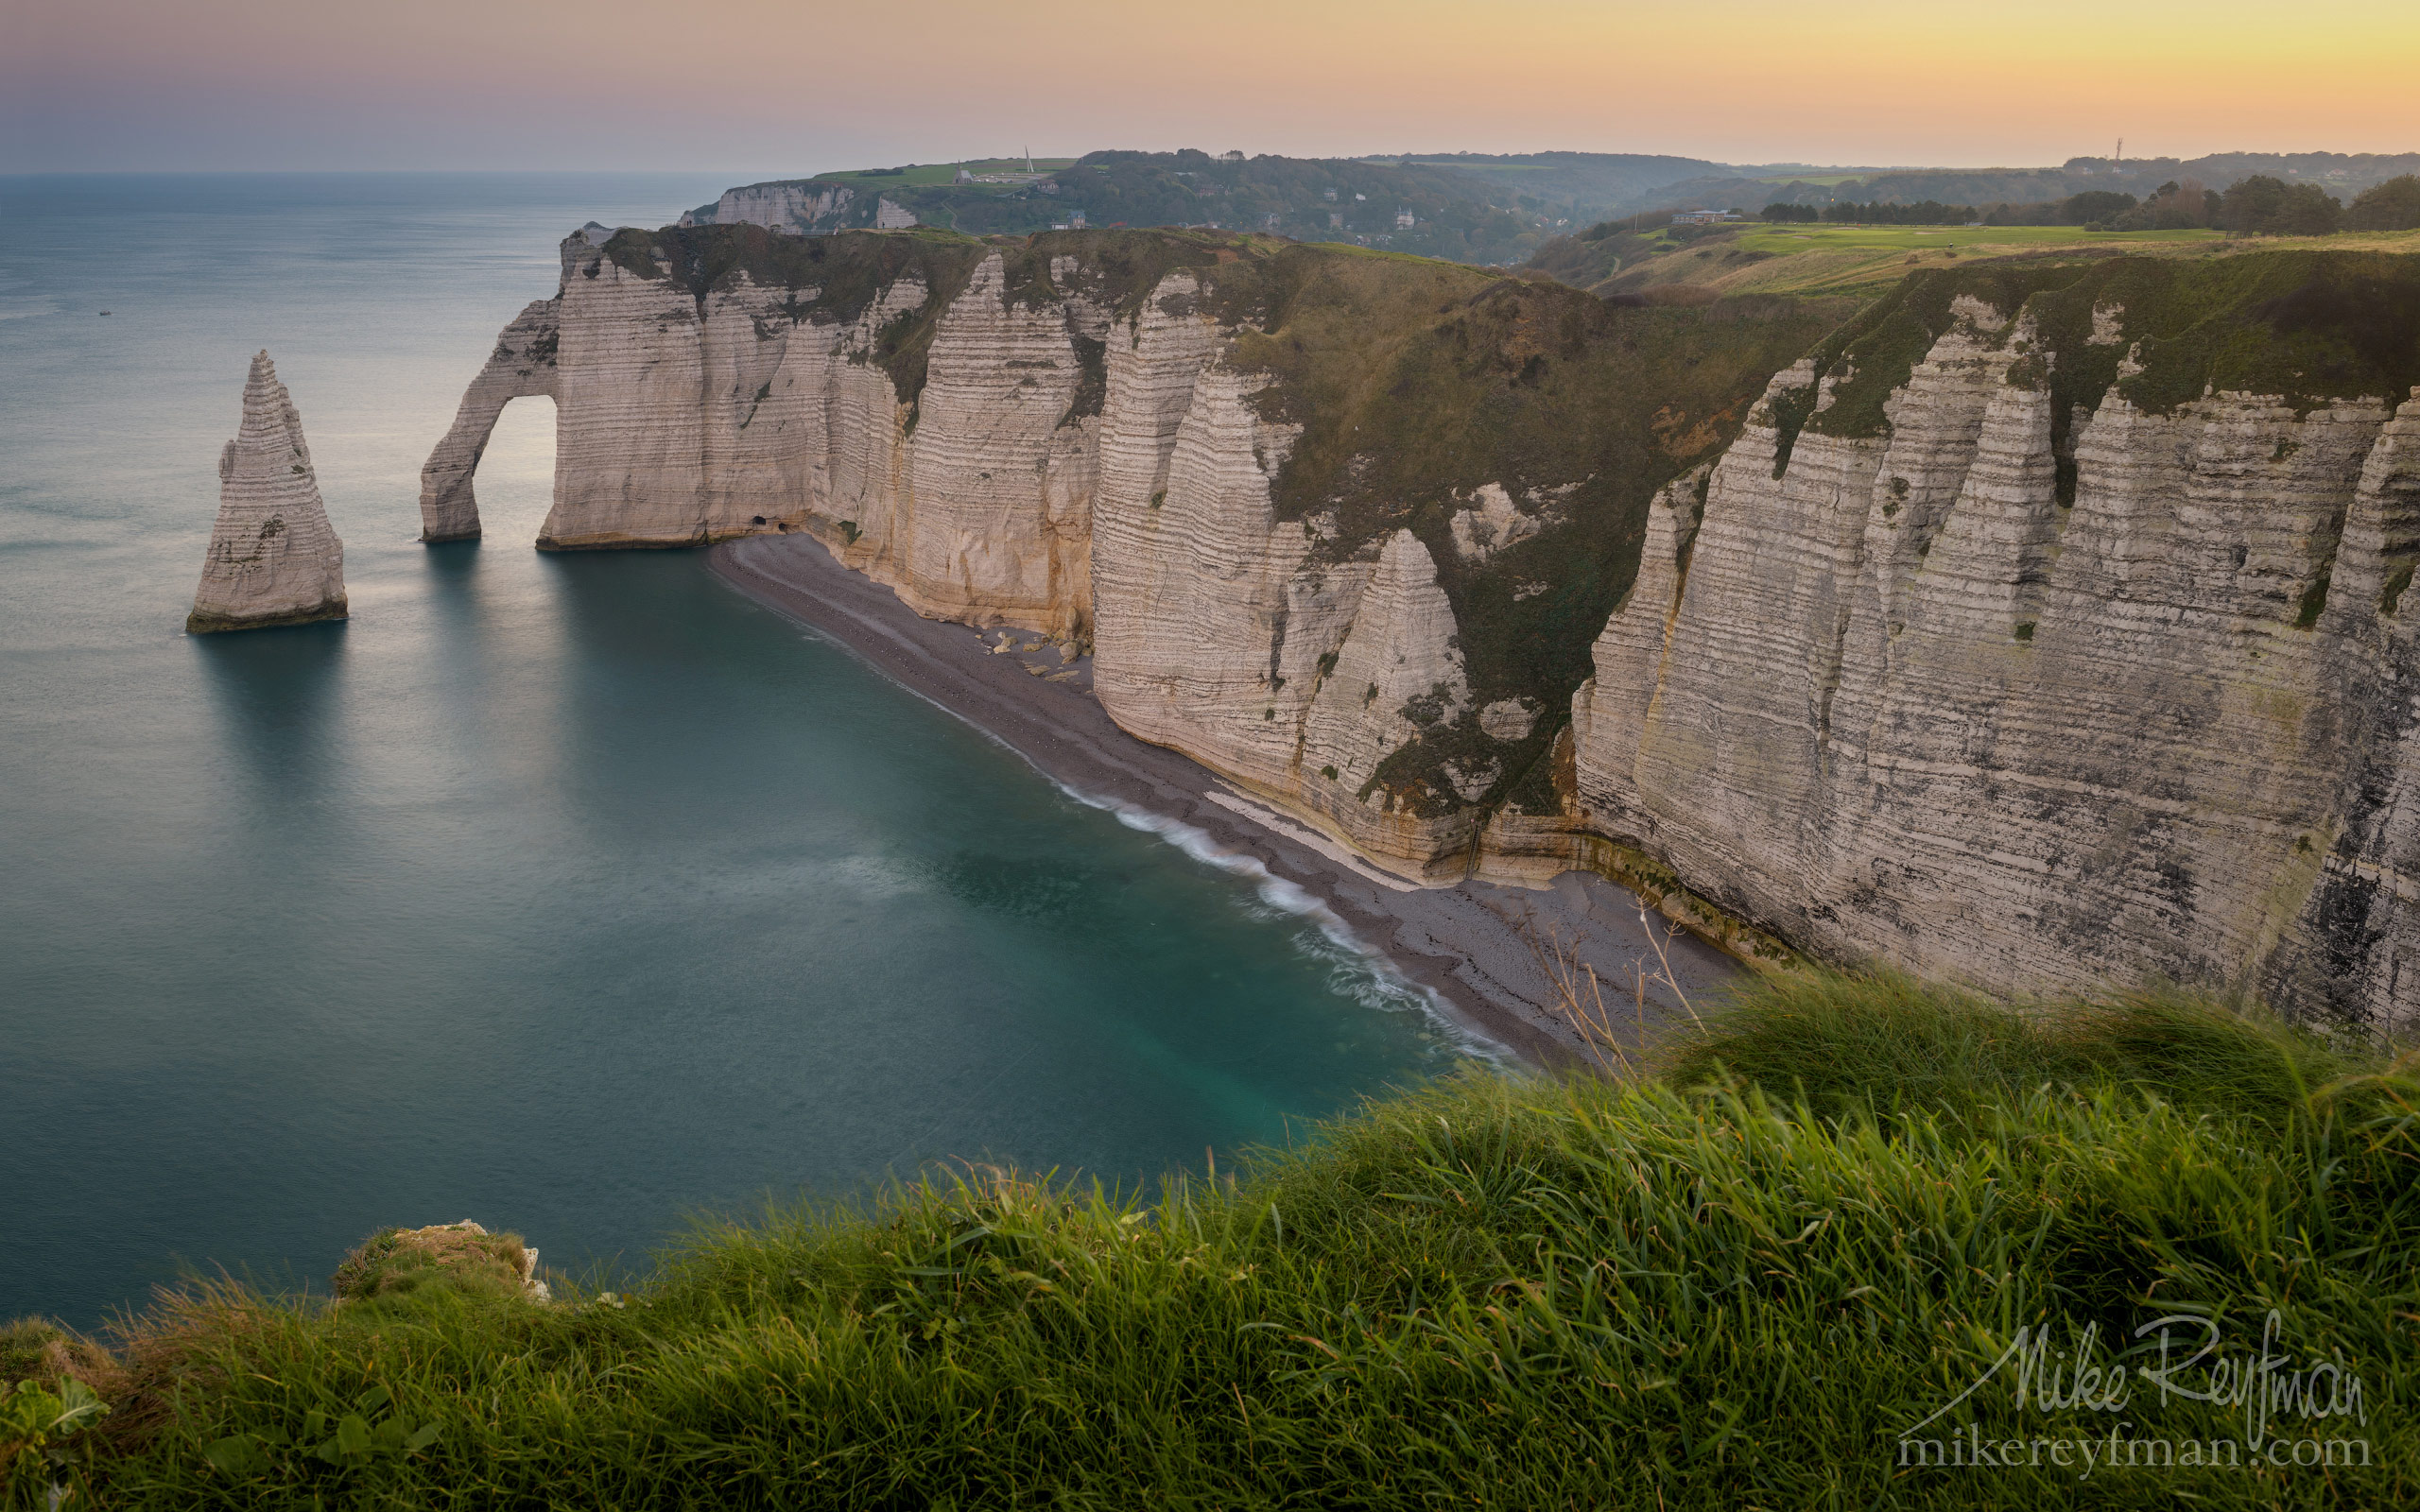 Arch Porte d'Aval and L'Aiguille - the Needle. Cote d'Albatre – The Alabaster Coast. Ertretat, Normandy, France ET1-MR50A0157 - White Chalk Cliffs and Arches of Alabaster Coast. Etretat, Upper Normandy, France - Mike Reyfman Photography